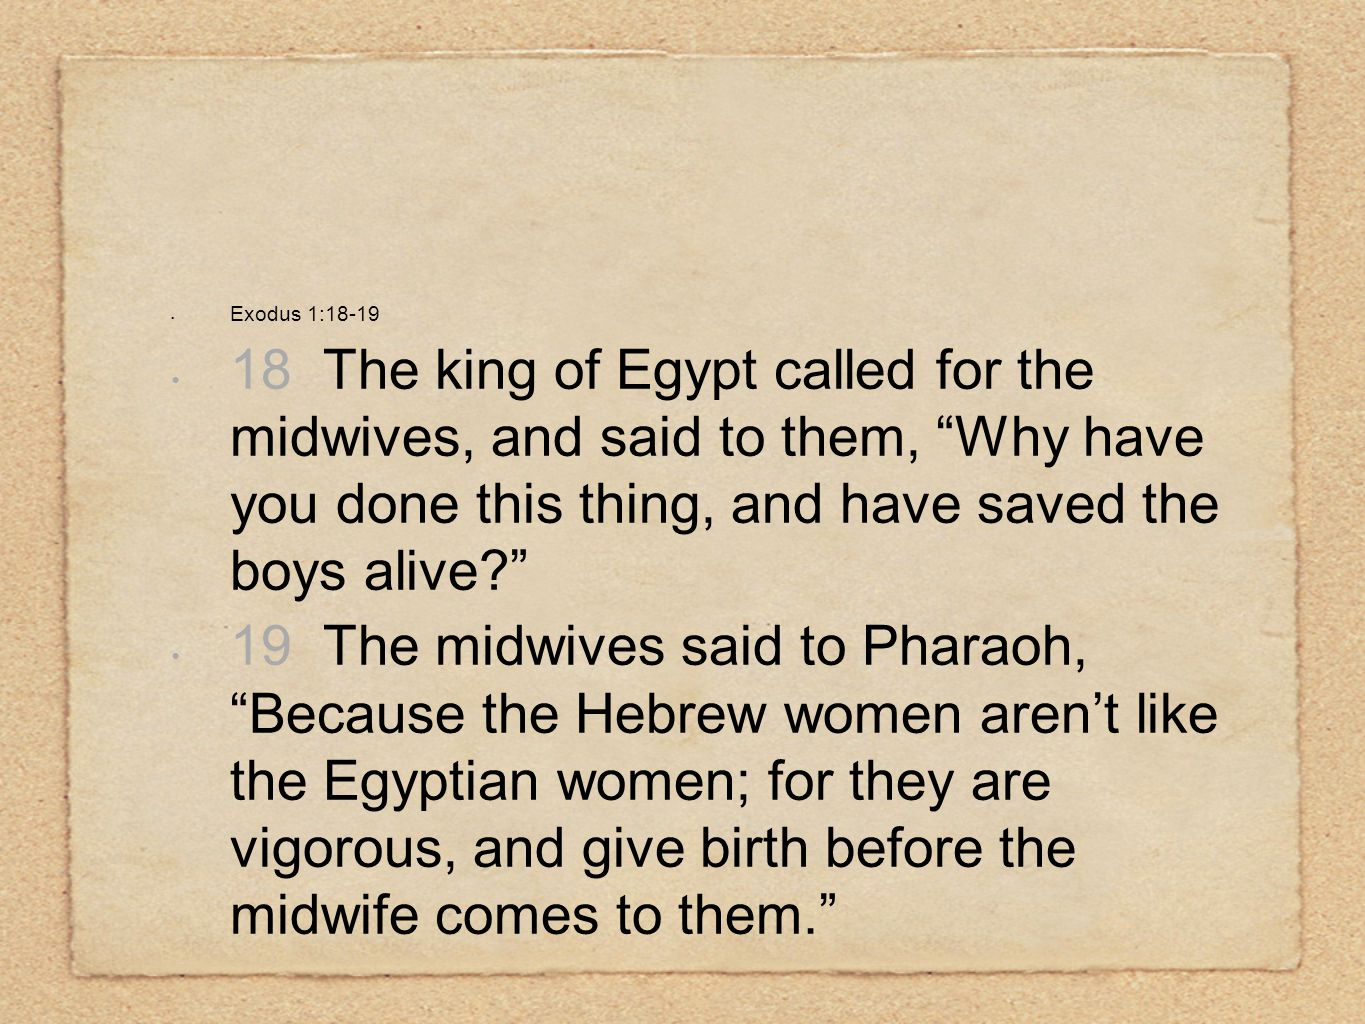 Exodus 1:18-19 18 The king of Egypt called for the midwives, and said to them, Why have you done this thing, and have saved the boys alive 19 The midwives said to Pharaoh, Because the Hebrew women aren't like the Egyptian women; for they are vigorous, and give birth before the midwife comes to them.